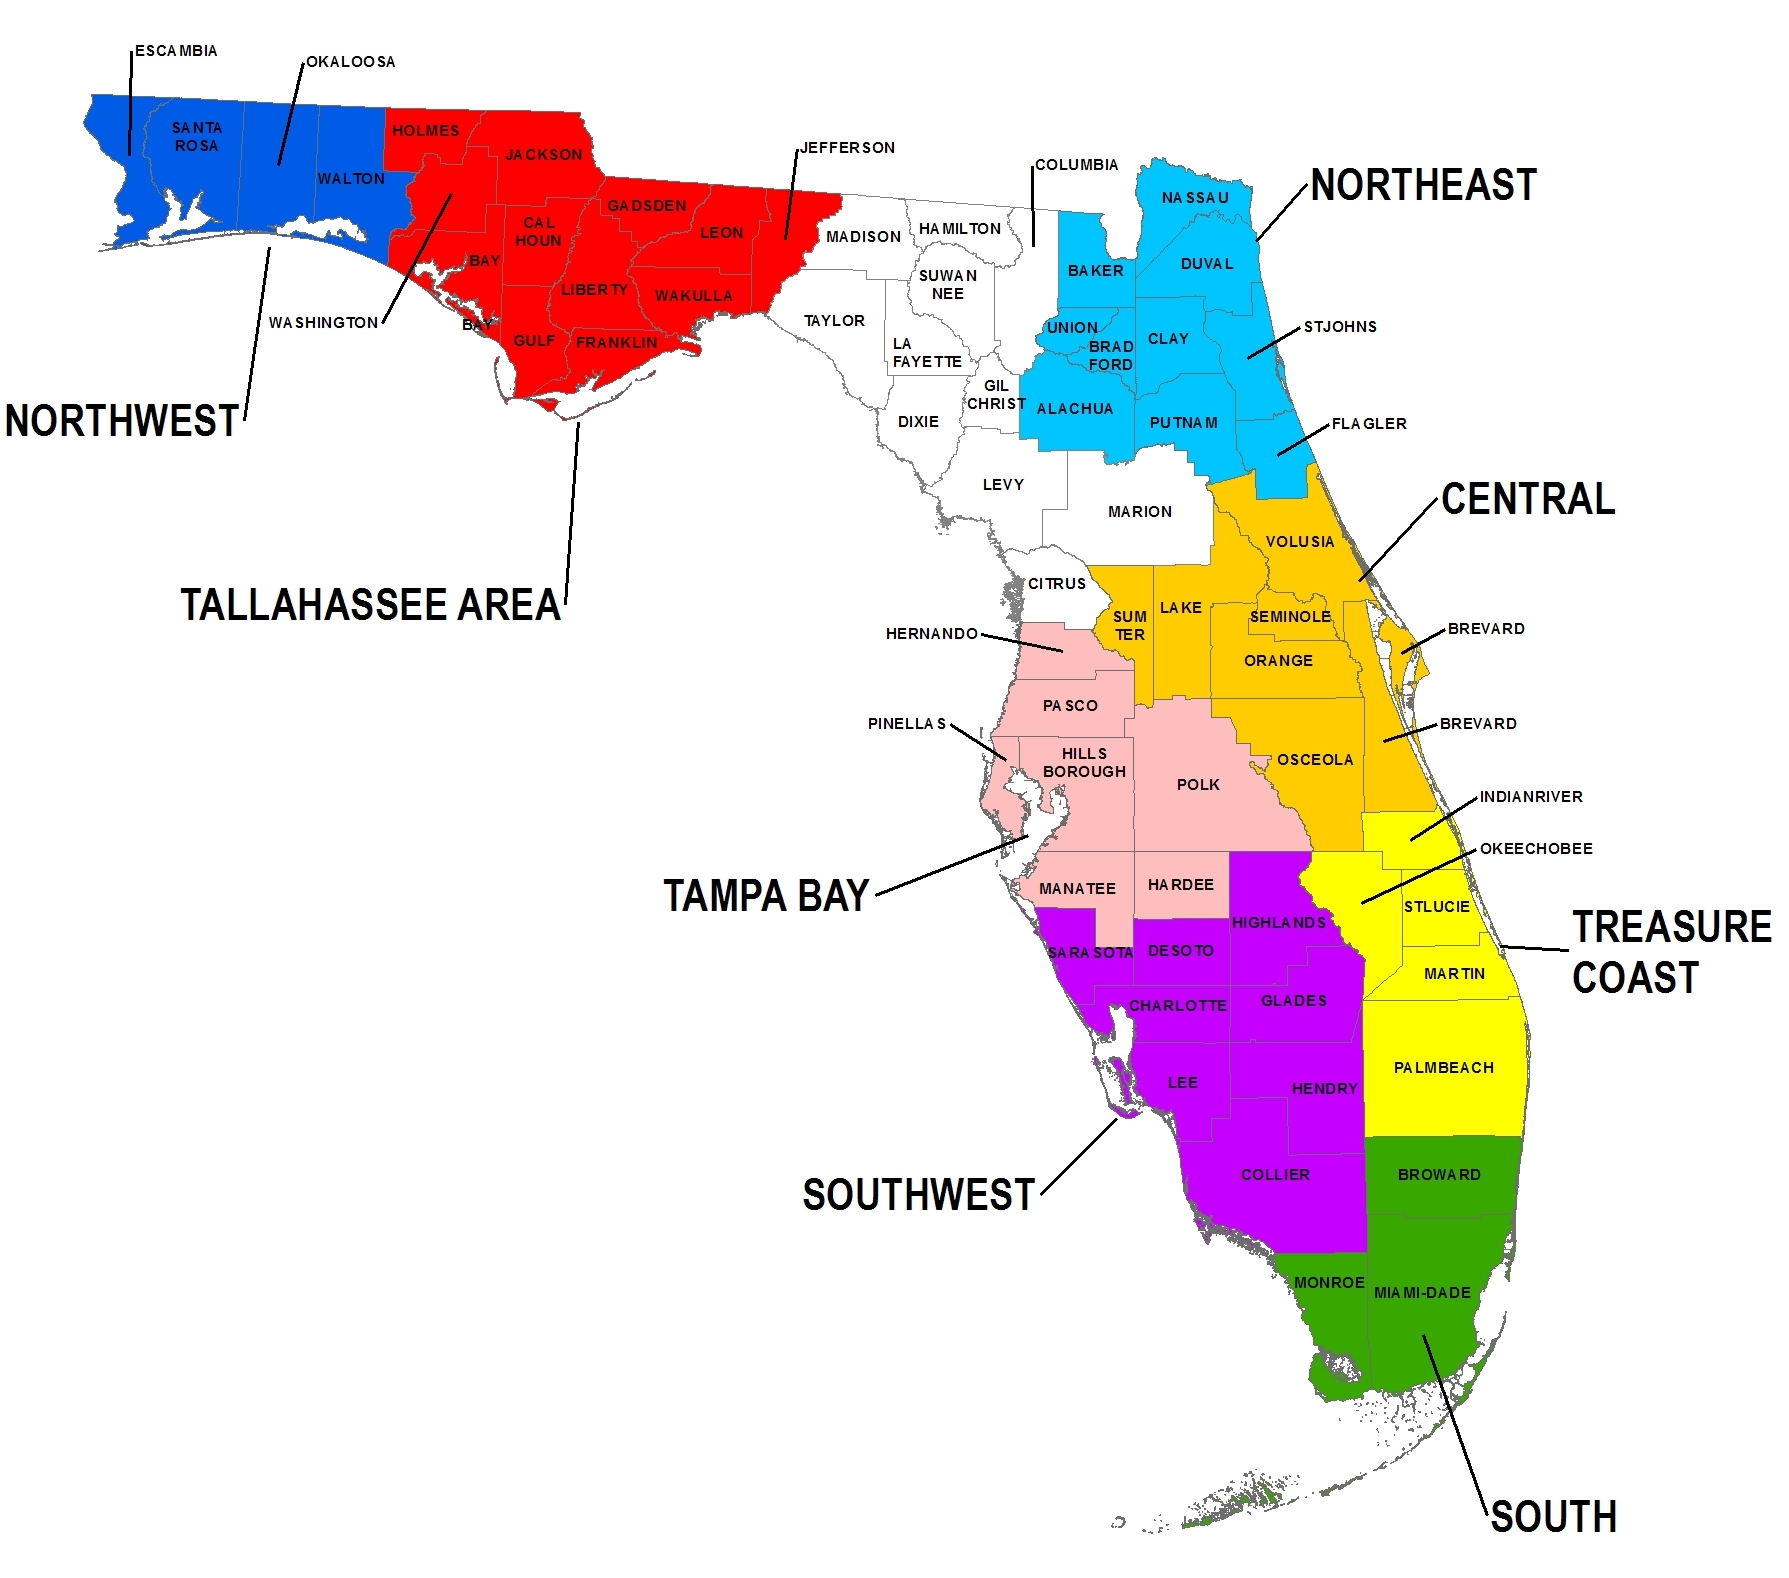 Free Florida Map Cliparts, Download Free Clip Art, Free Clip Art On - Free Florida Map